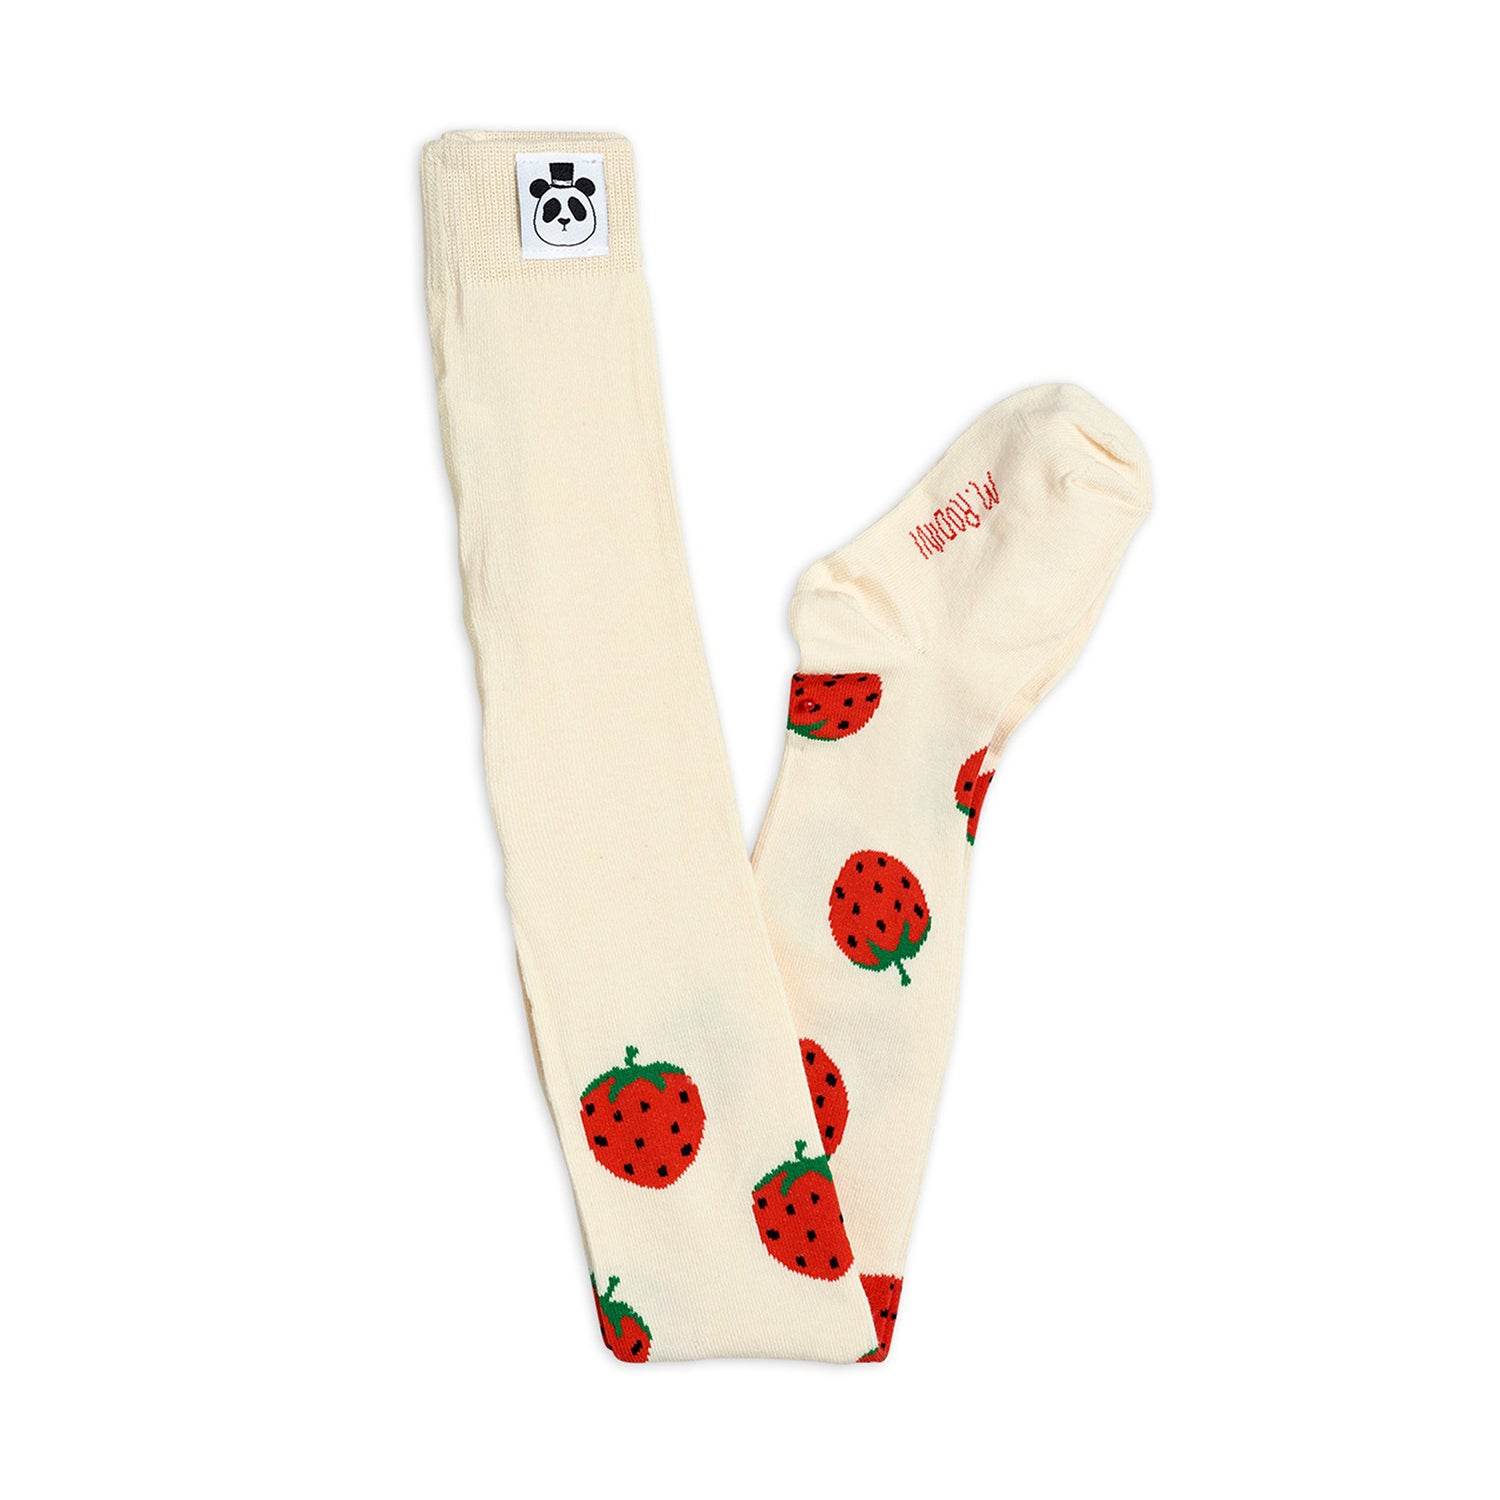 Mini Rodini strawberry sukkikset, offwhite